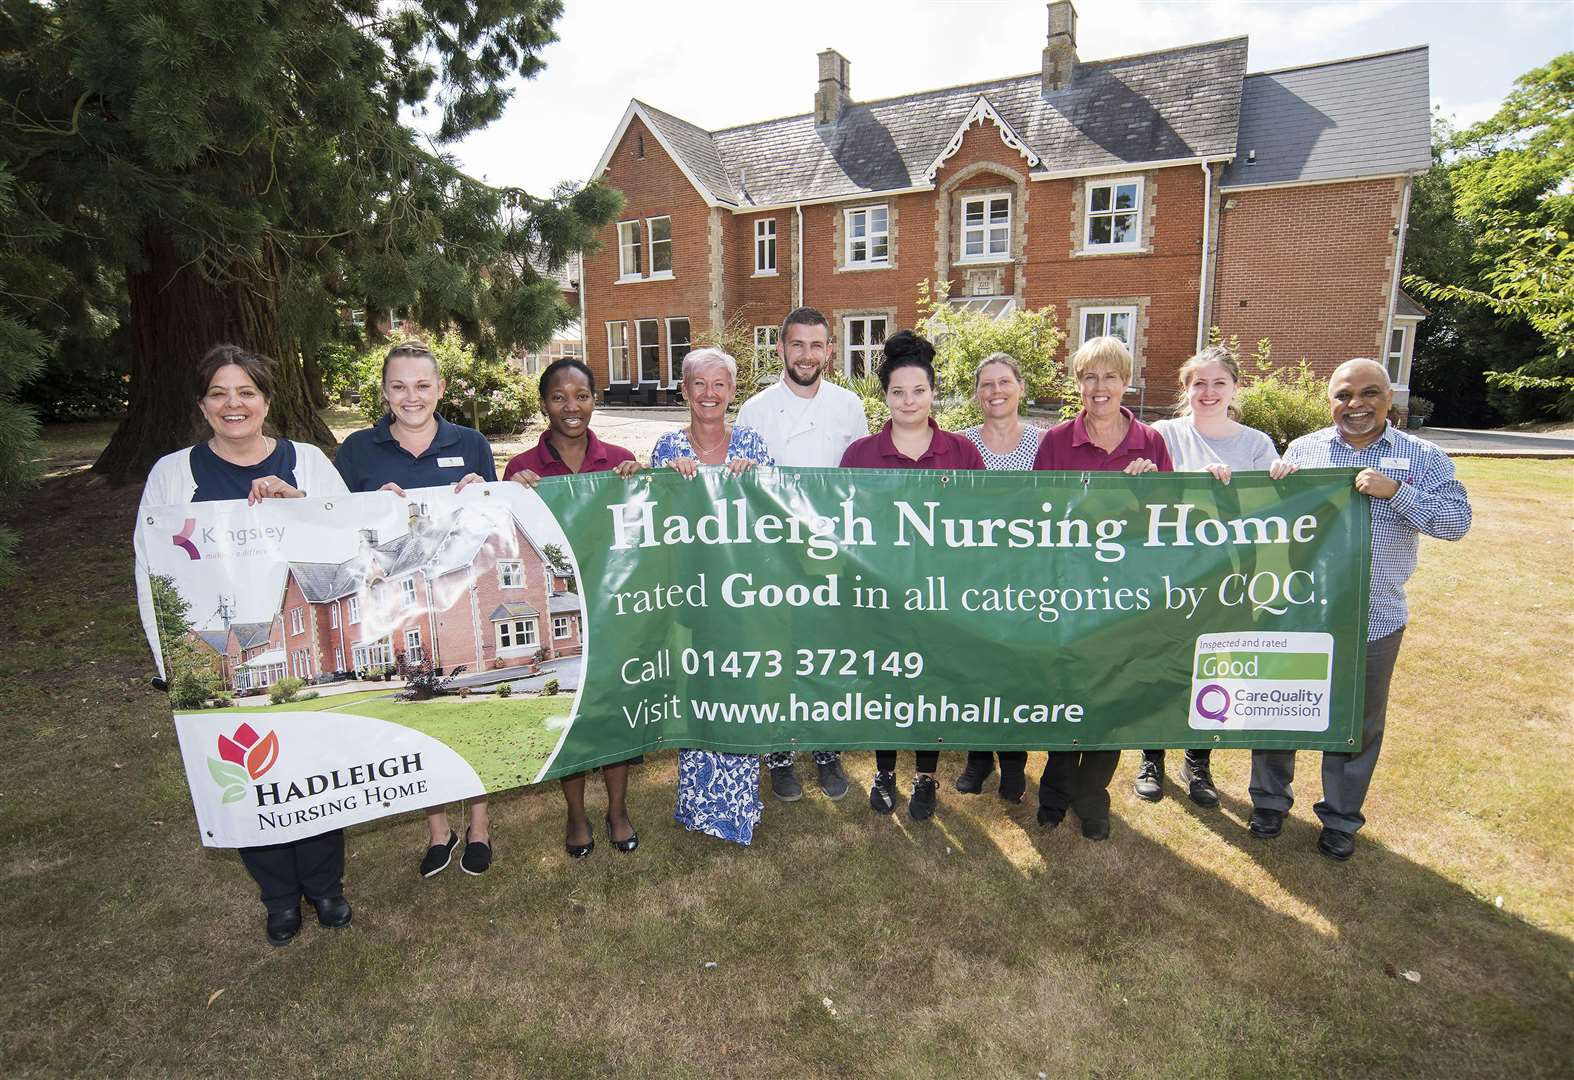 Hadleigh Nursing Home rebounds with strong CQC report